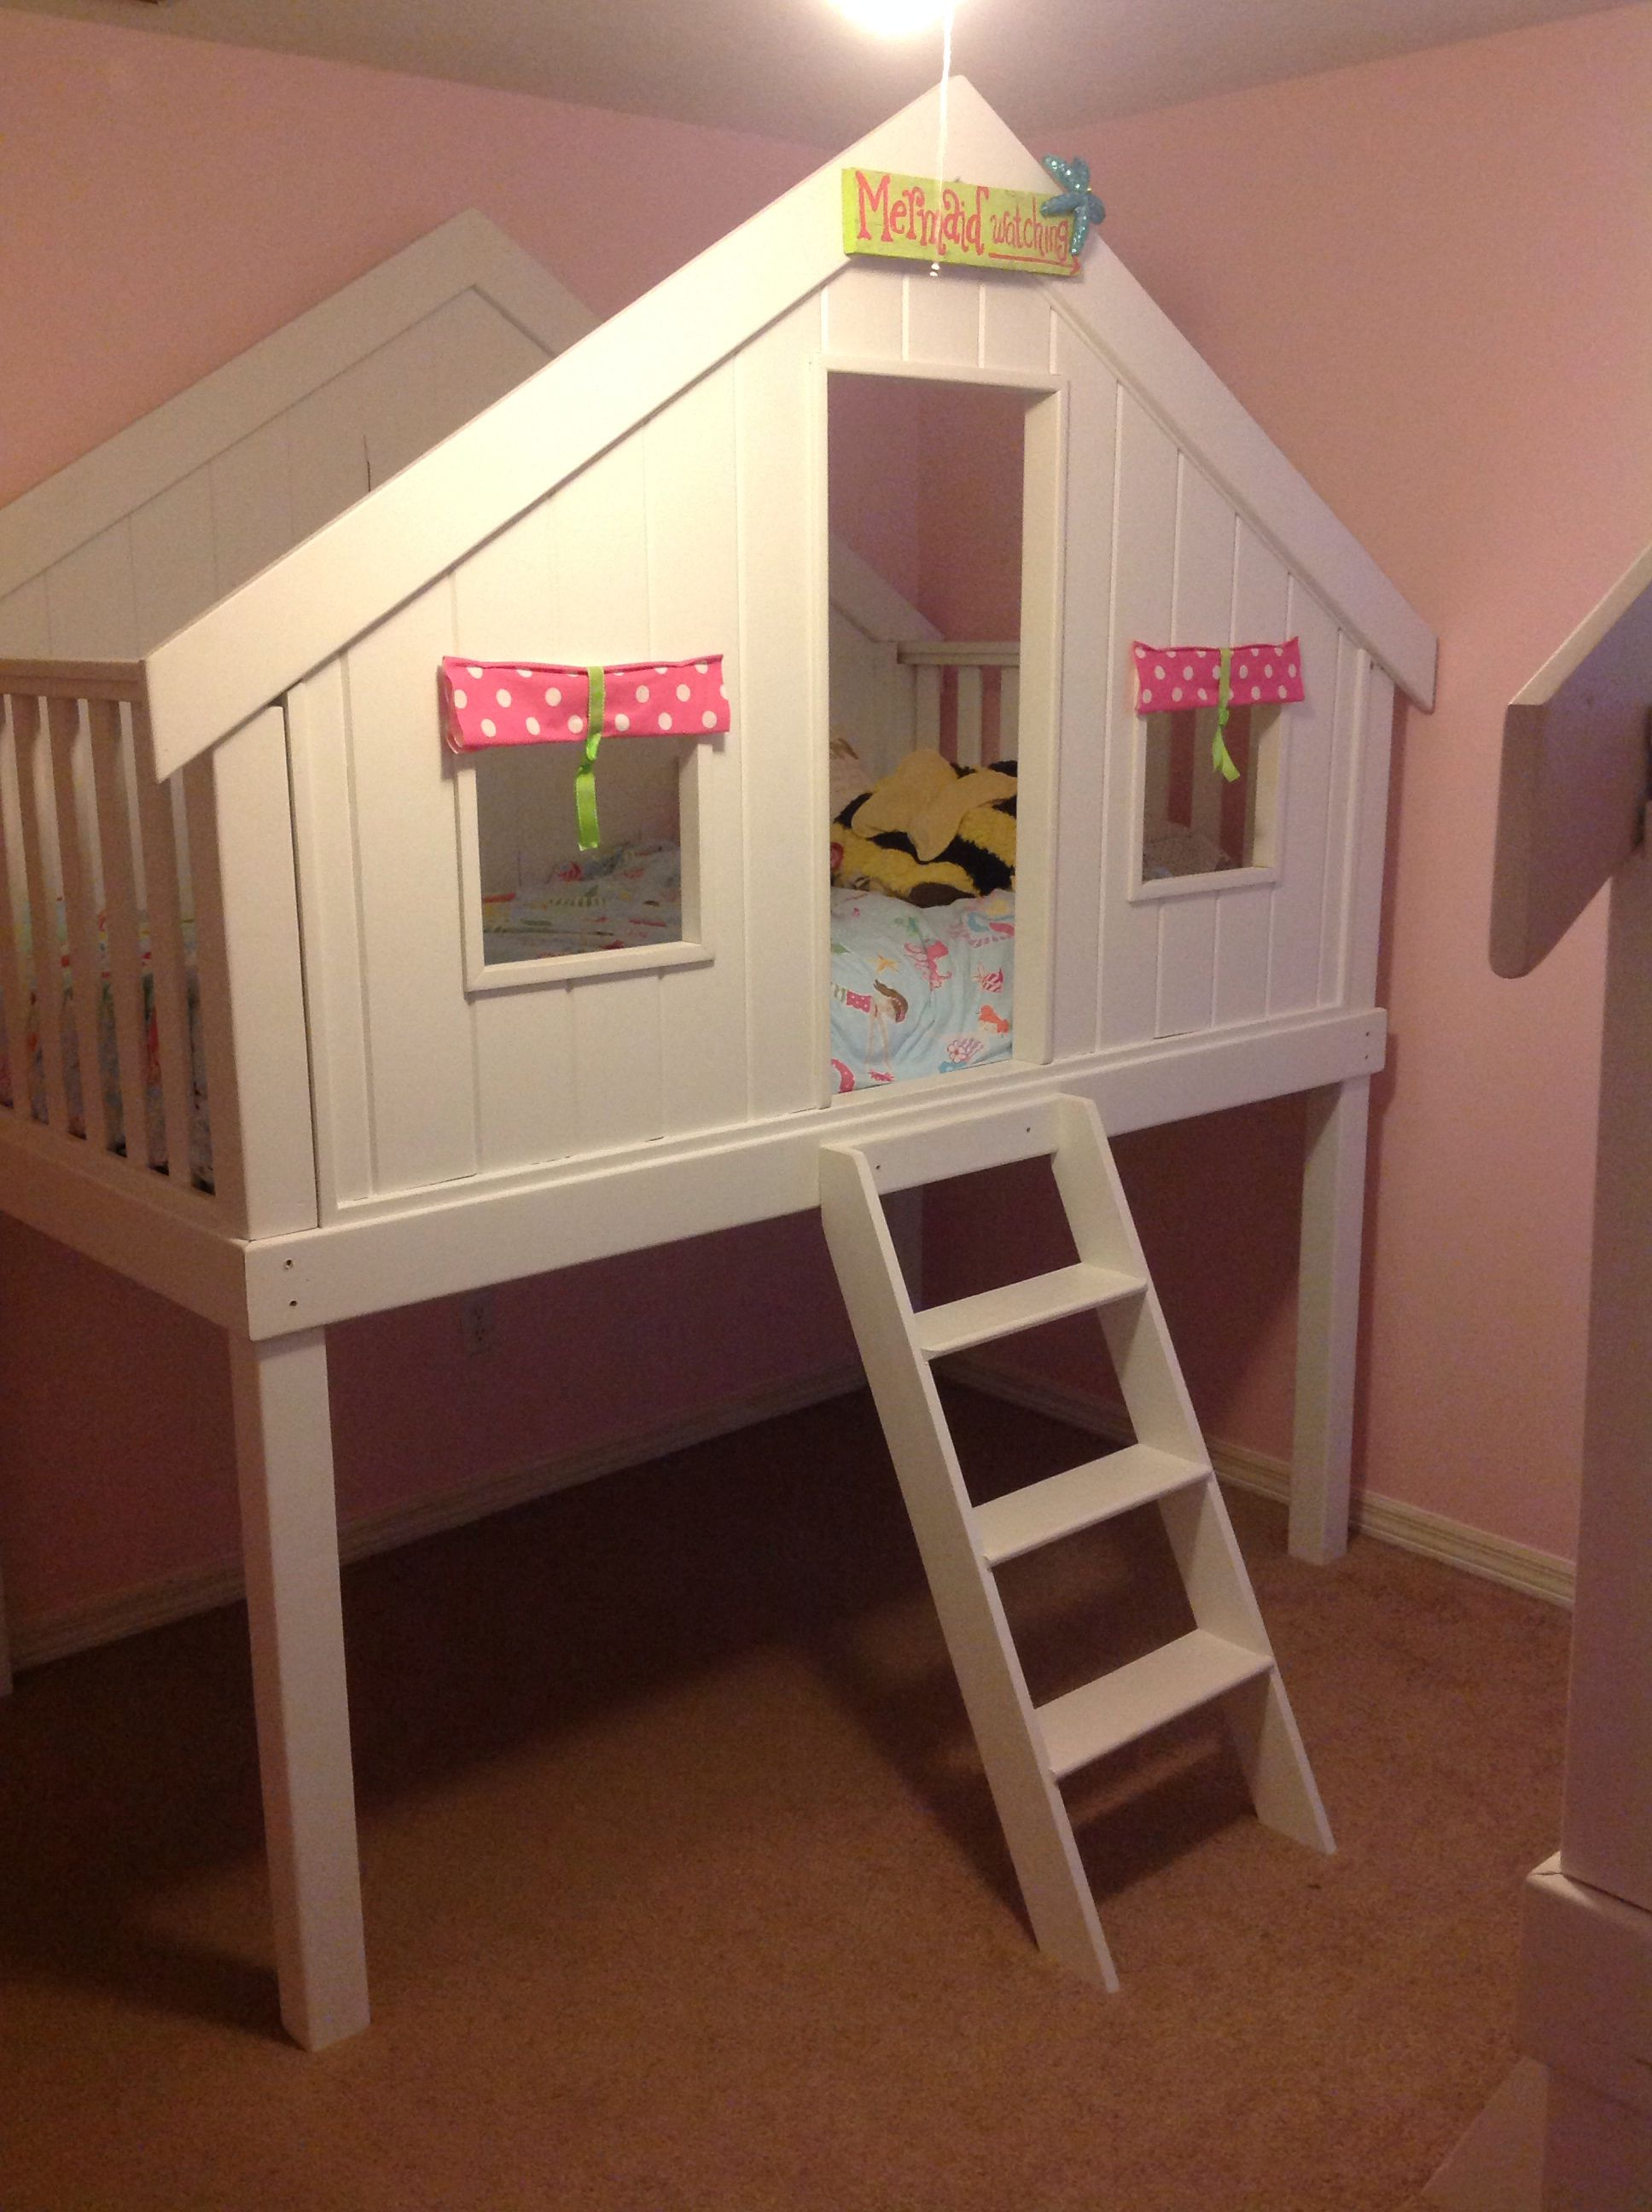 Cool Modern Beds Awesome Beds Bub Made For Girls Homemade Cool Beds Furniture